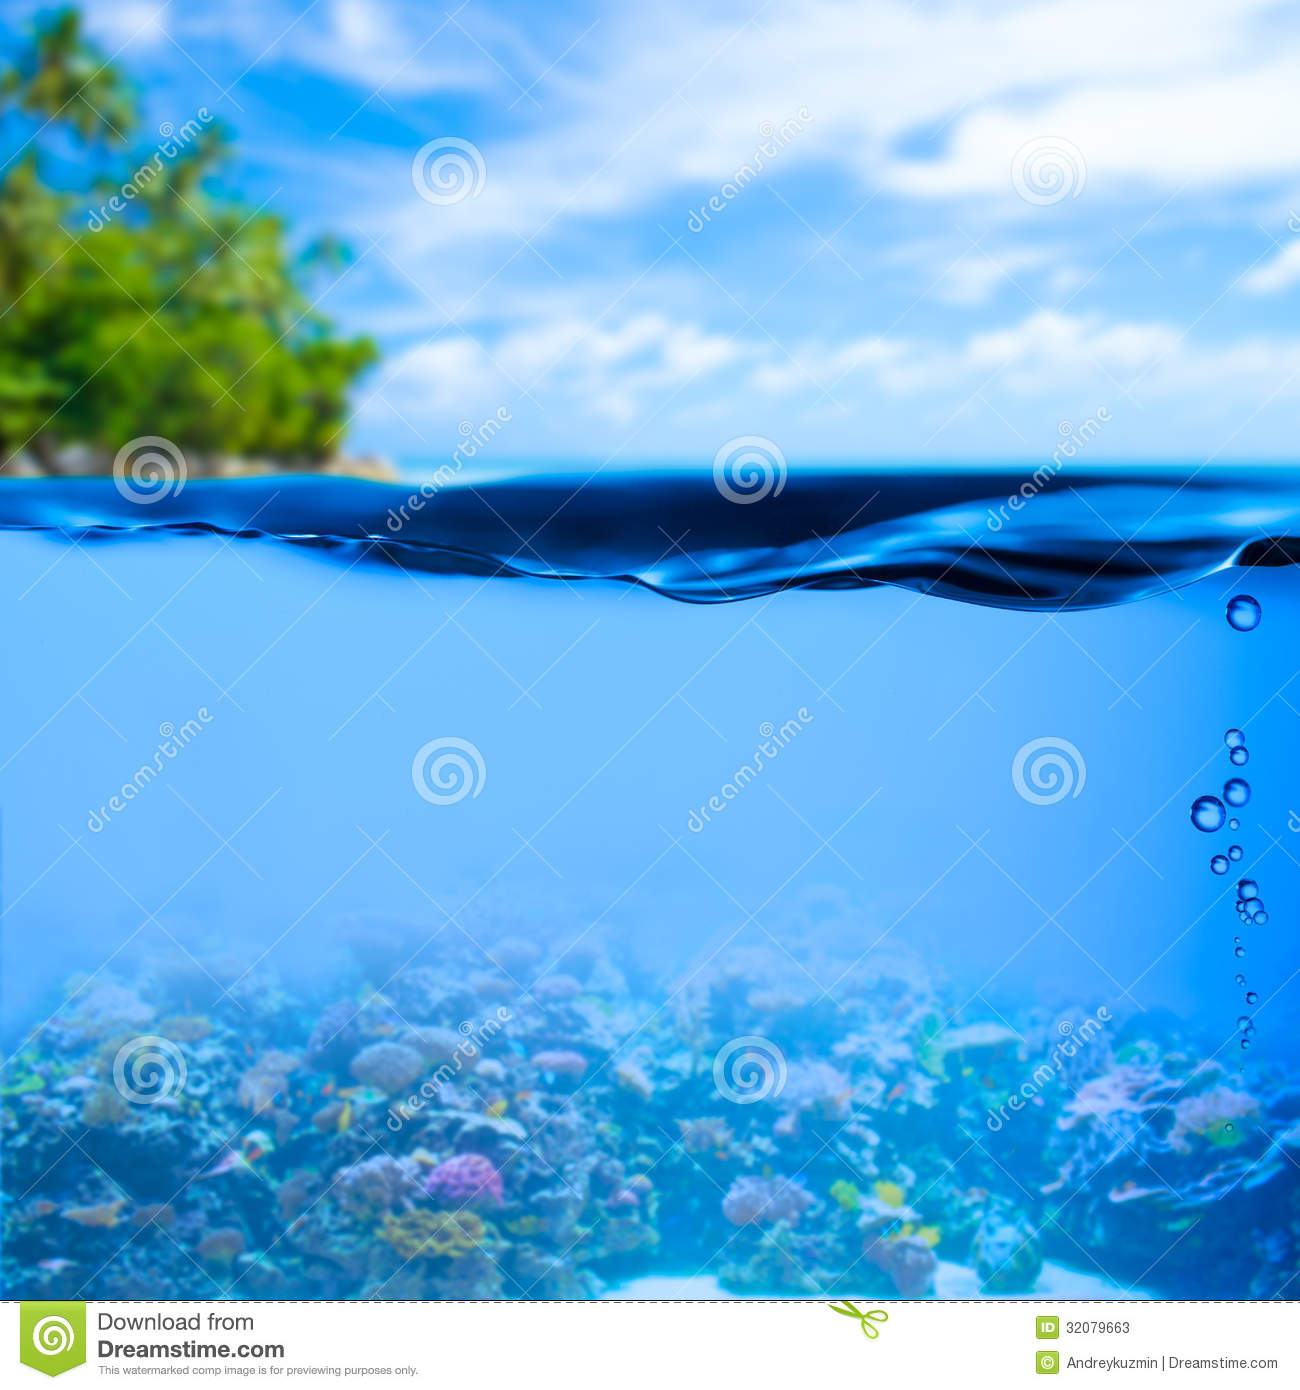 Surface water clipart.